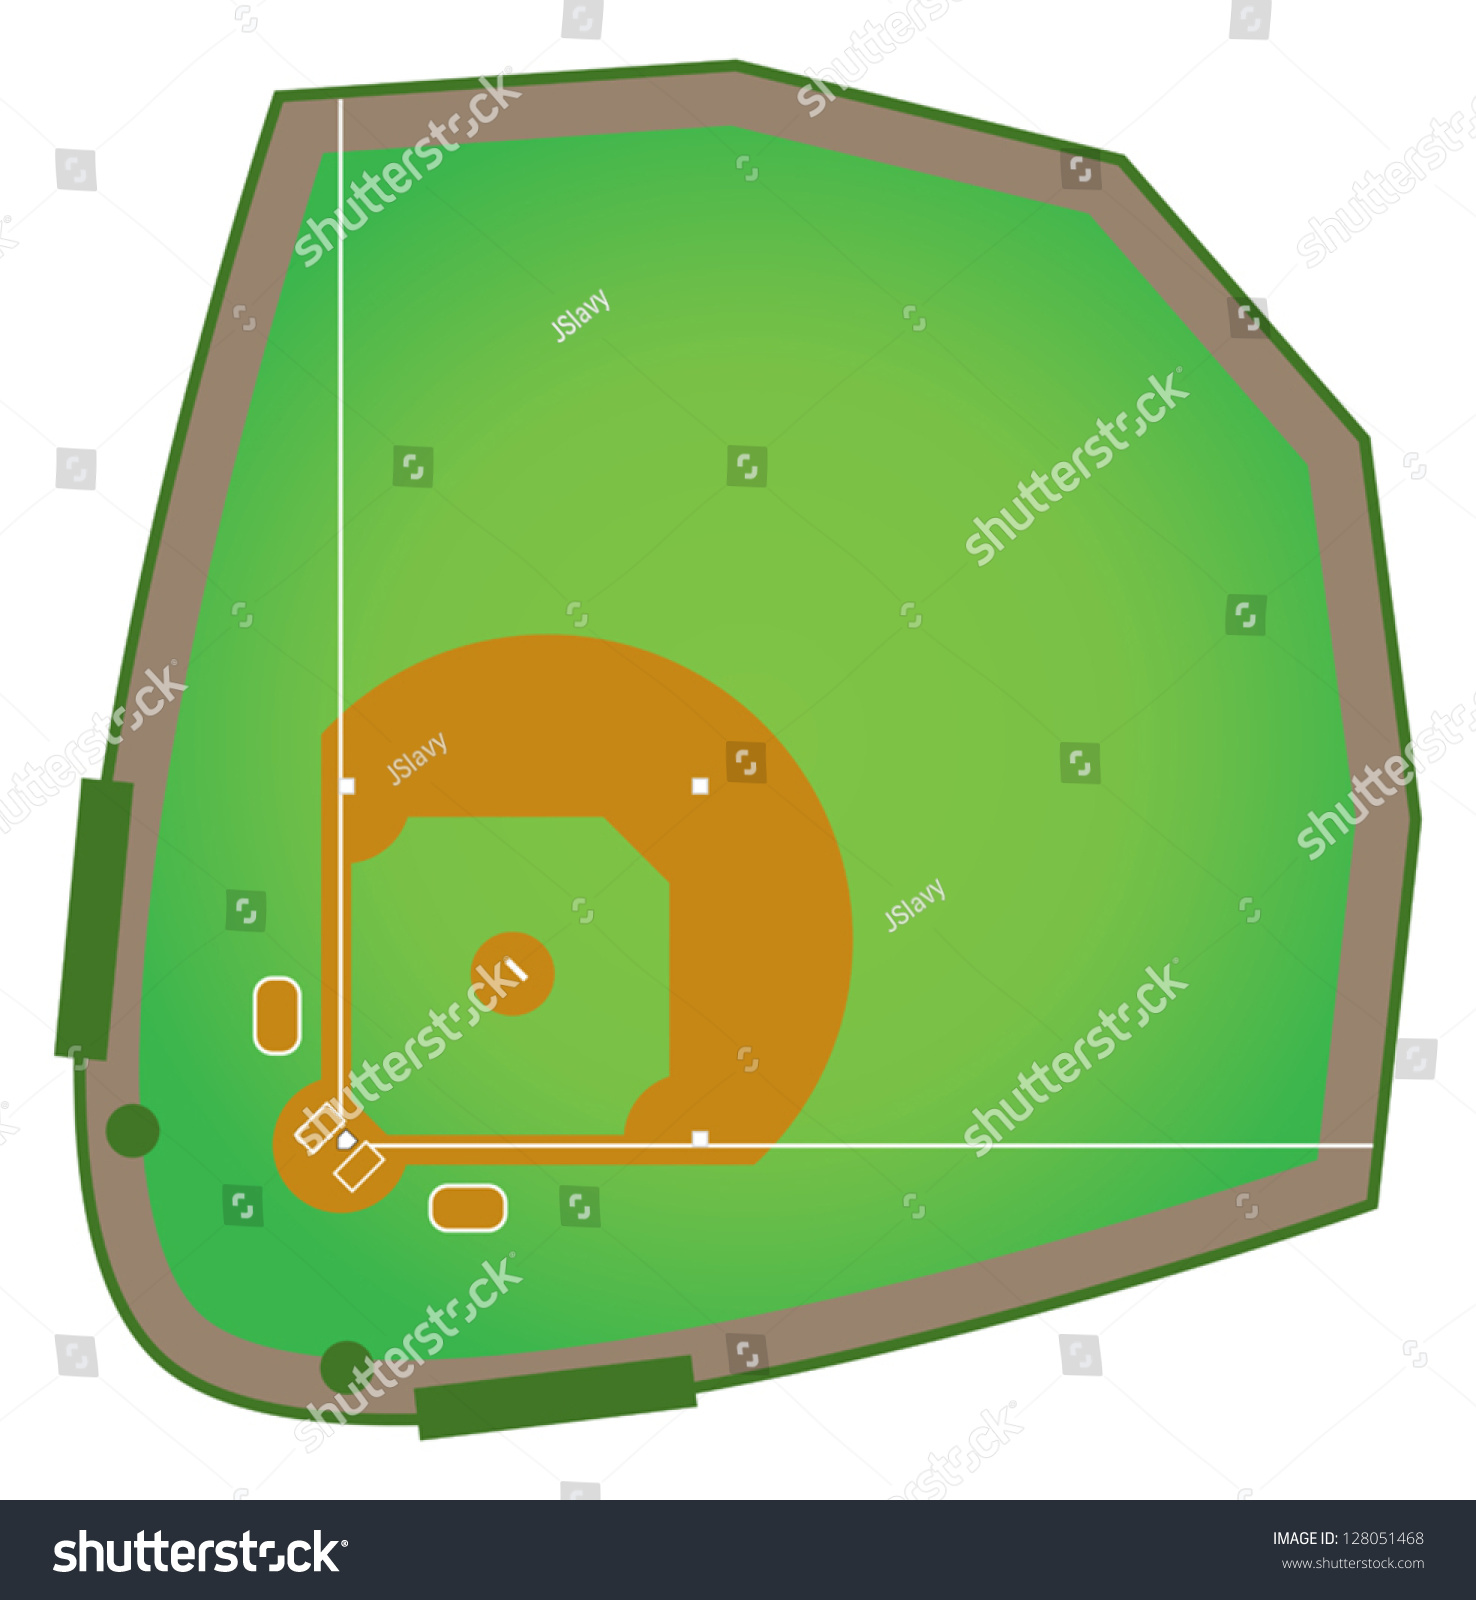 regulation baseball field diagram two gang light switch wiring realistic diamond that would be stock vector